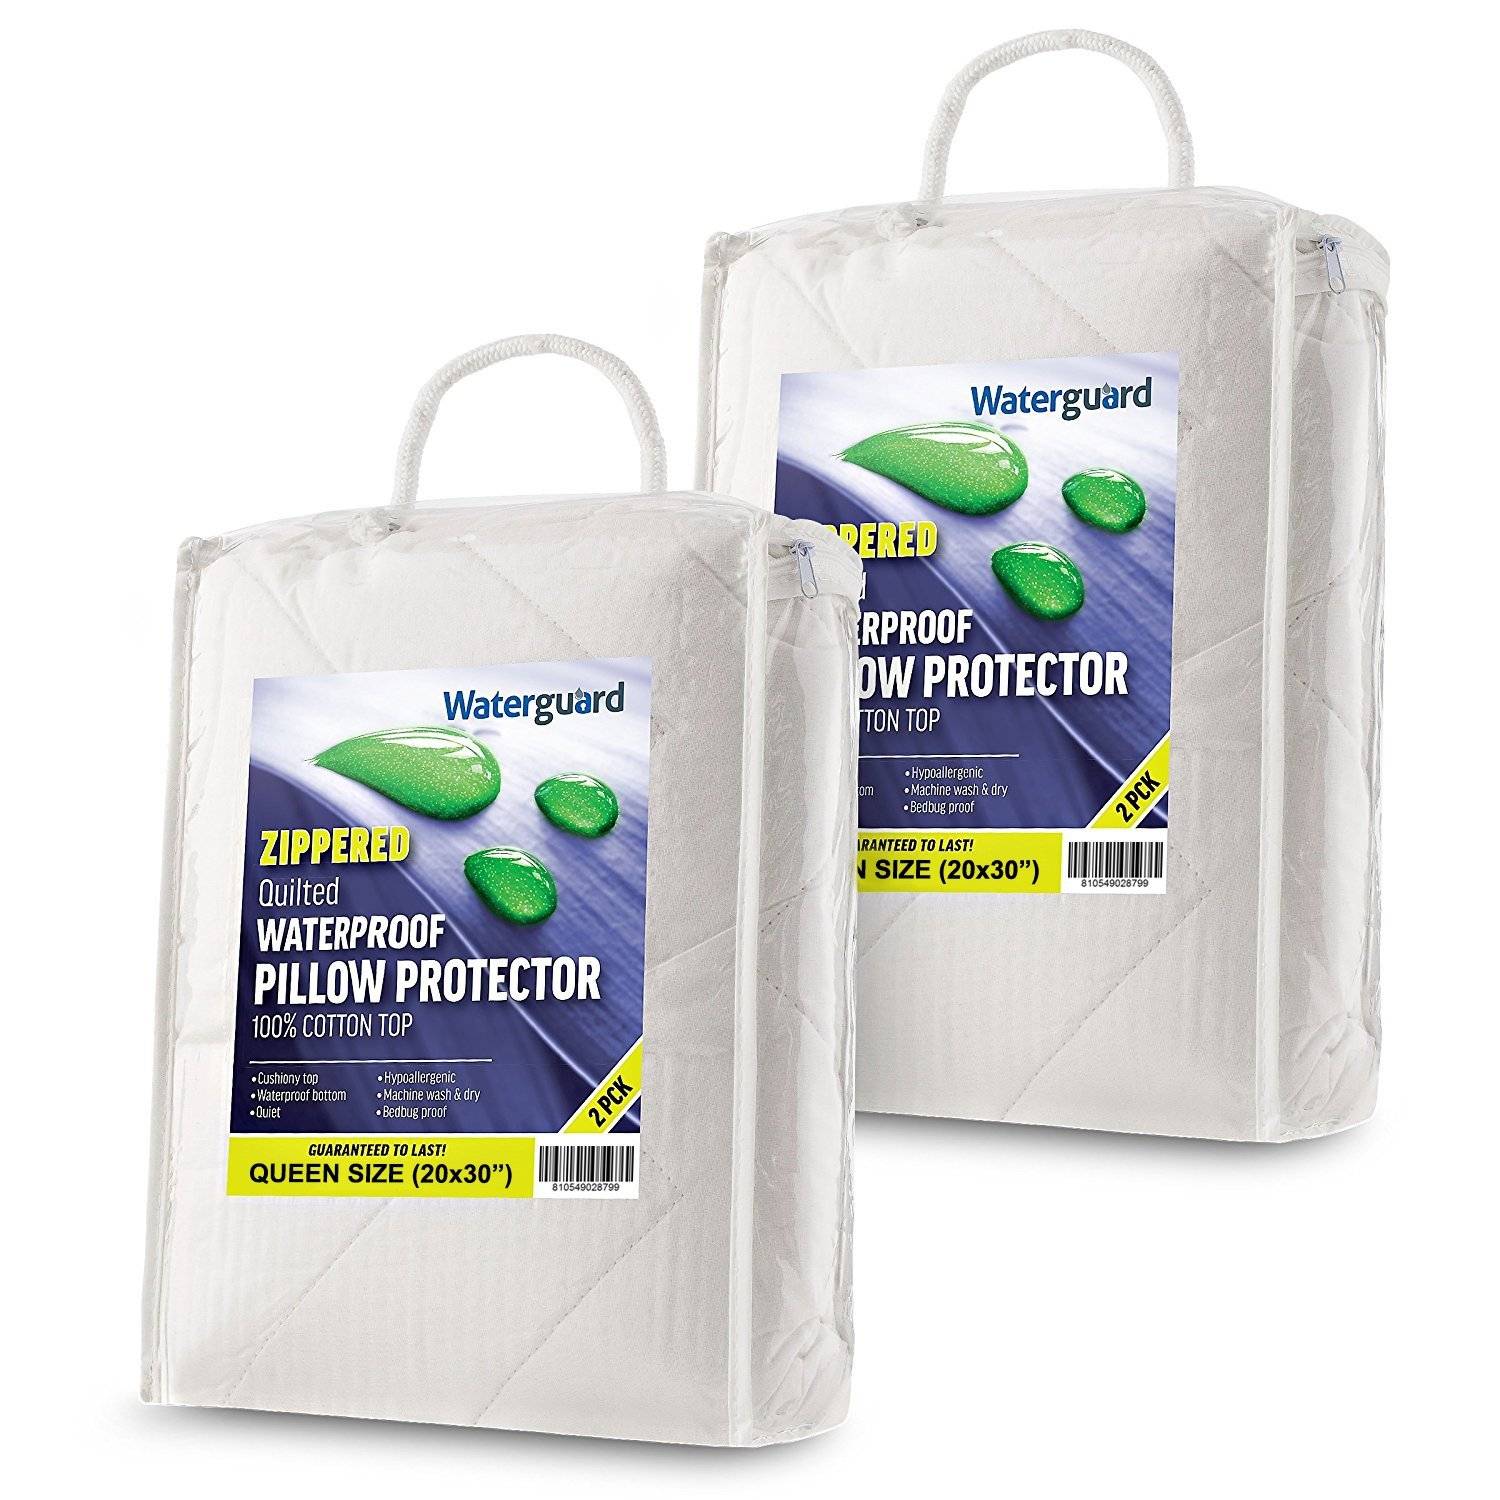 Waterguard Waterproof Pillow Protectors Bed Bug Control, Zippered Quilted, Thick Pillow Covers, (4 Pack) 100% Cotton Cover Pillow Encasement - King Size (20x36) Set of 4